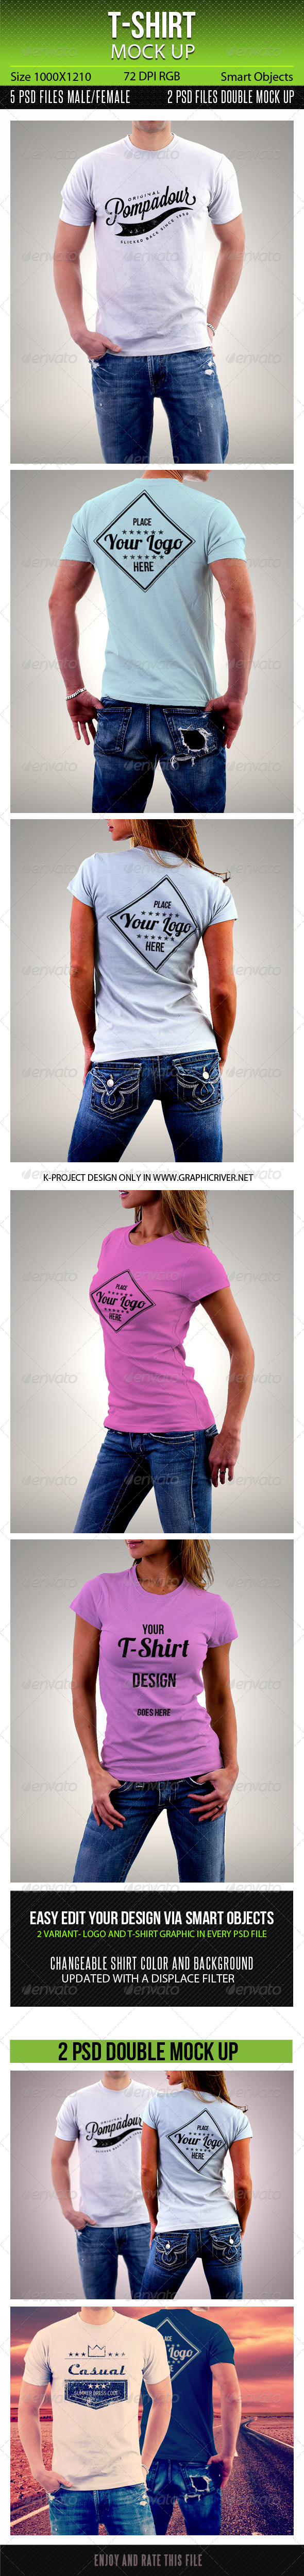 GraphicRiver T-Shirt Mock Up 6658933